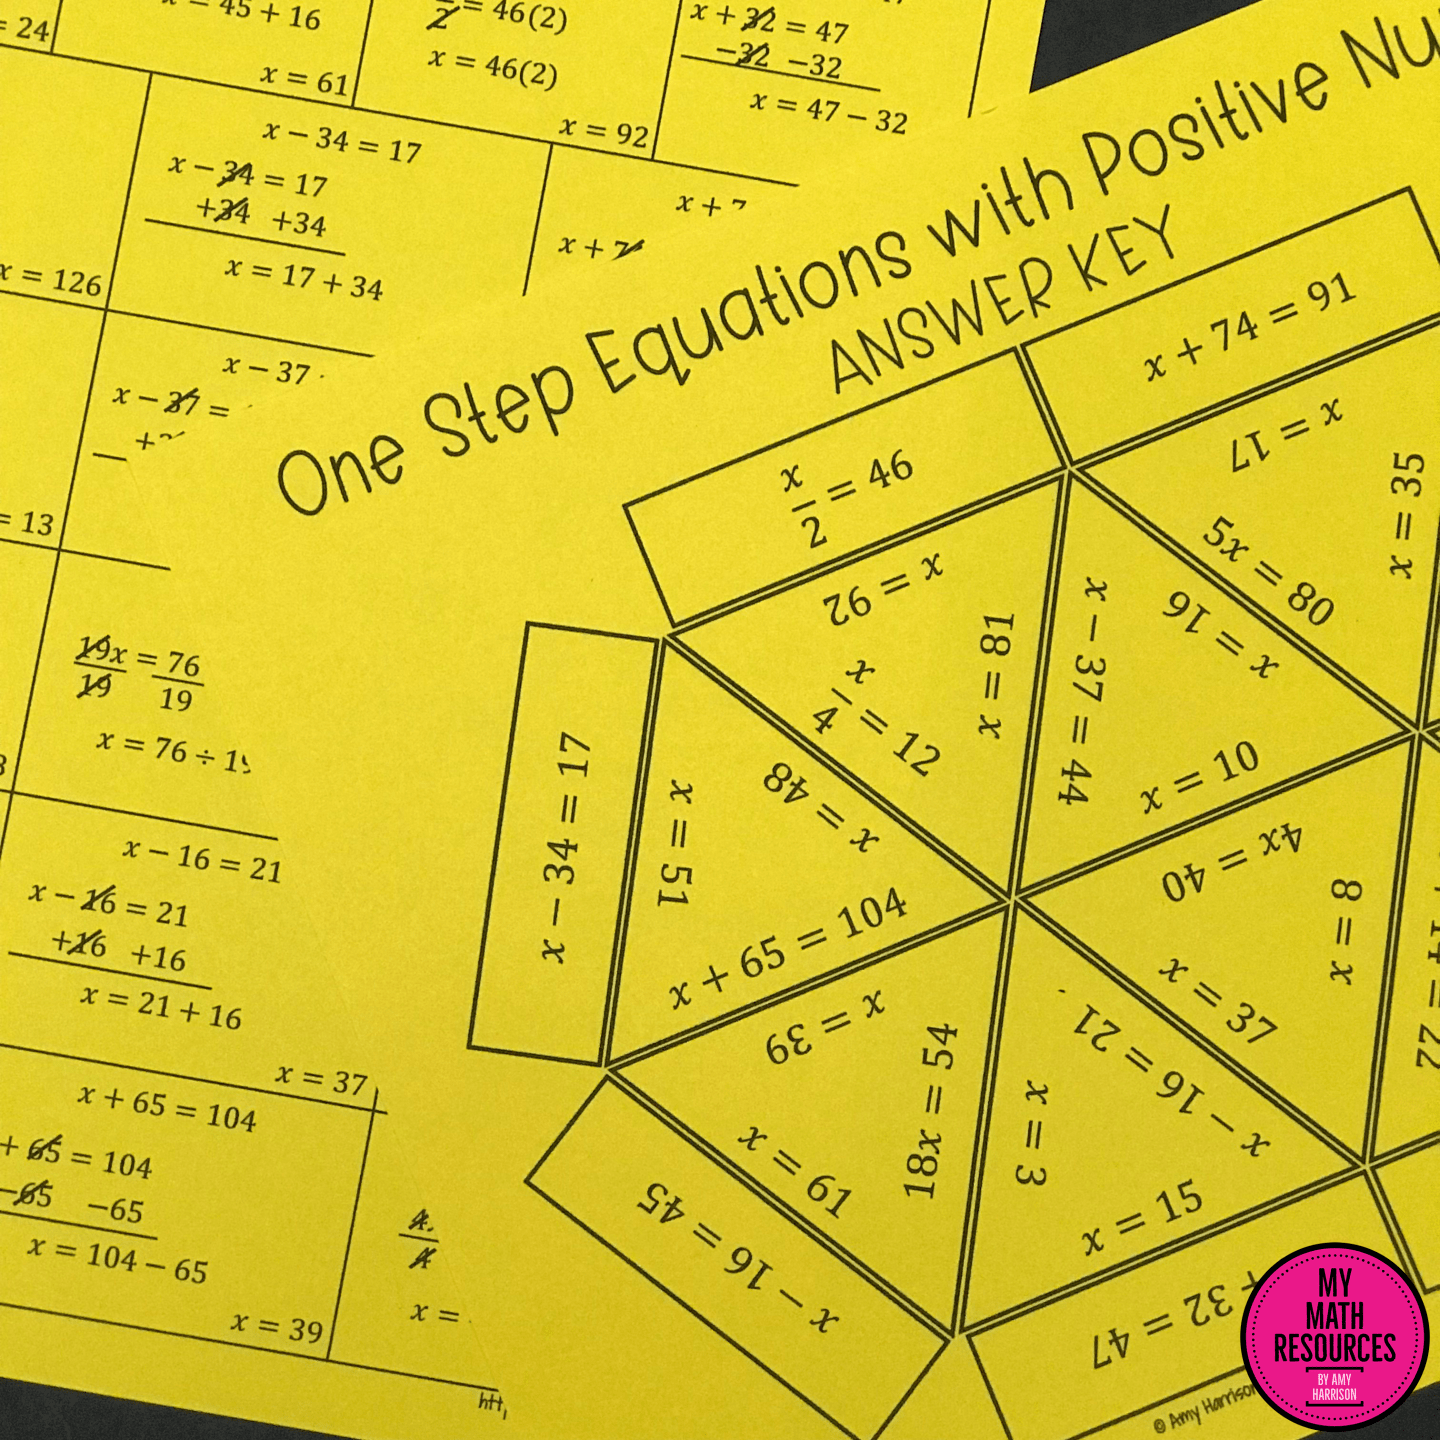 One Step Equations With Positive Numbers Triangle Puzzle